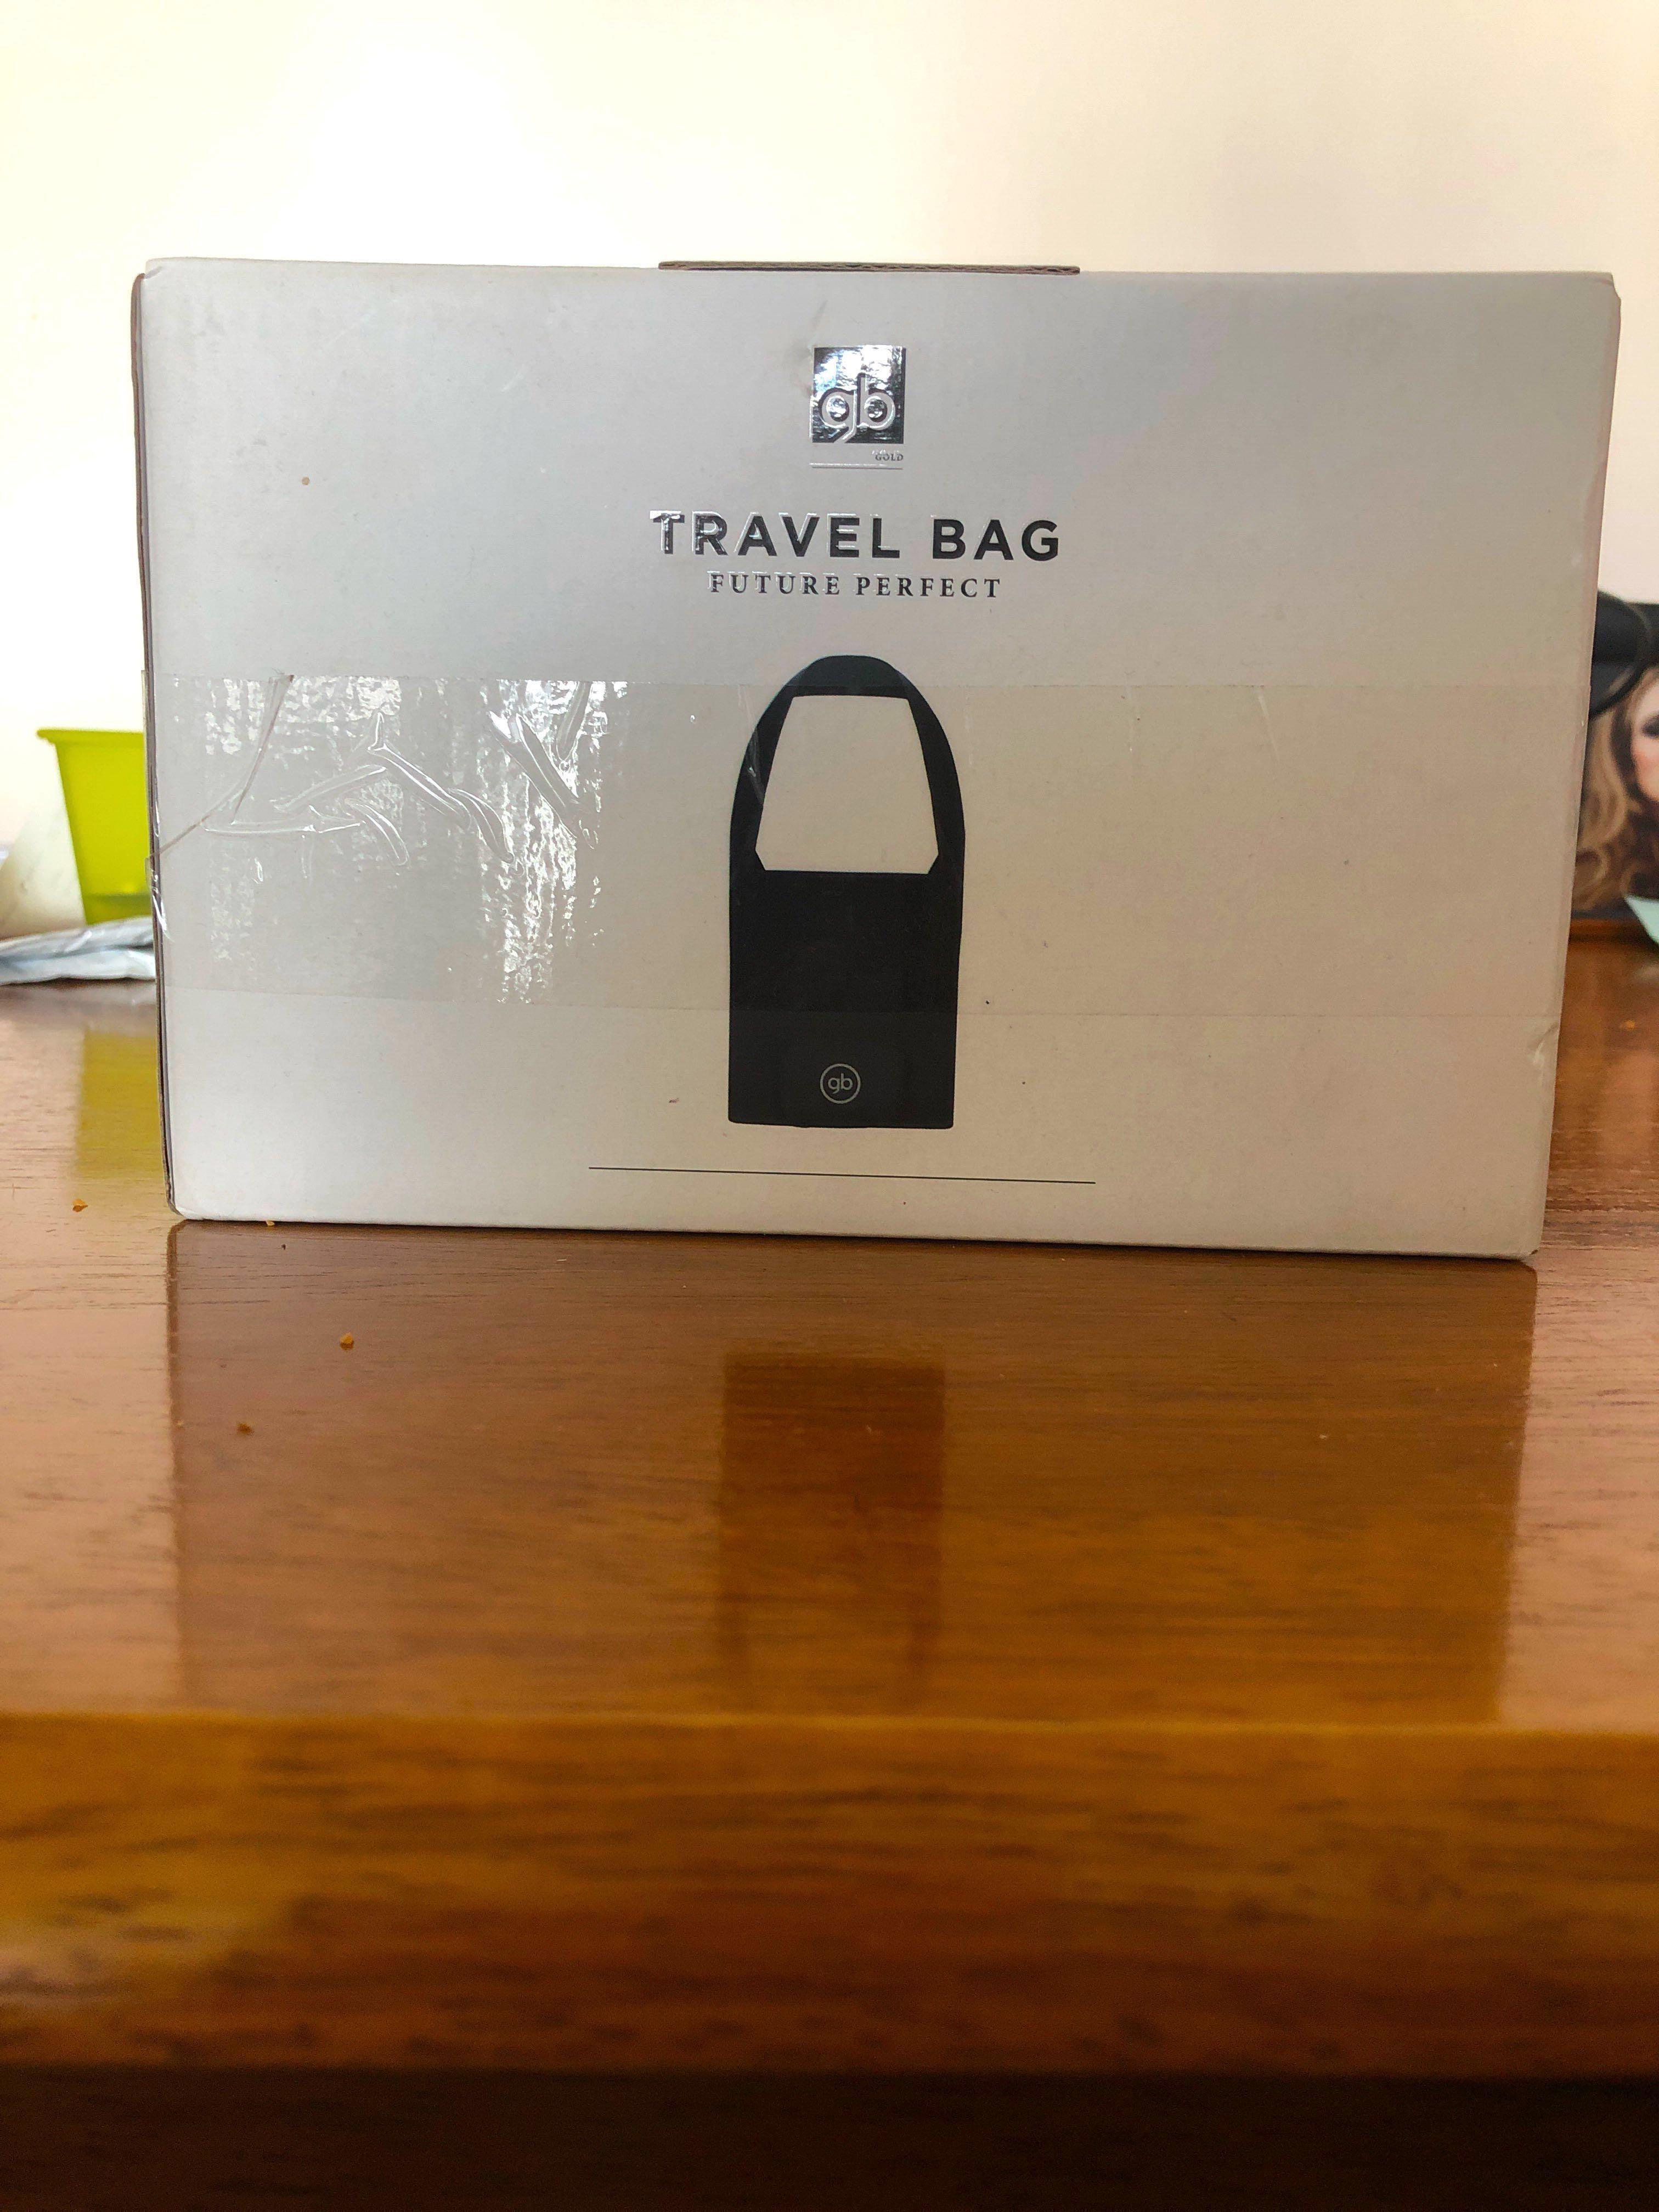 GB Pockit TRAVEL BAG (price non-negotiable)